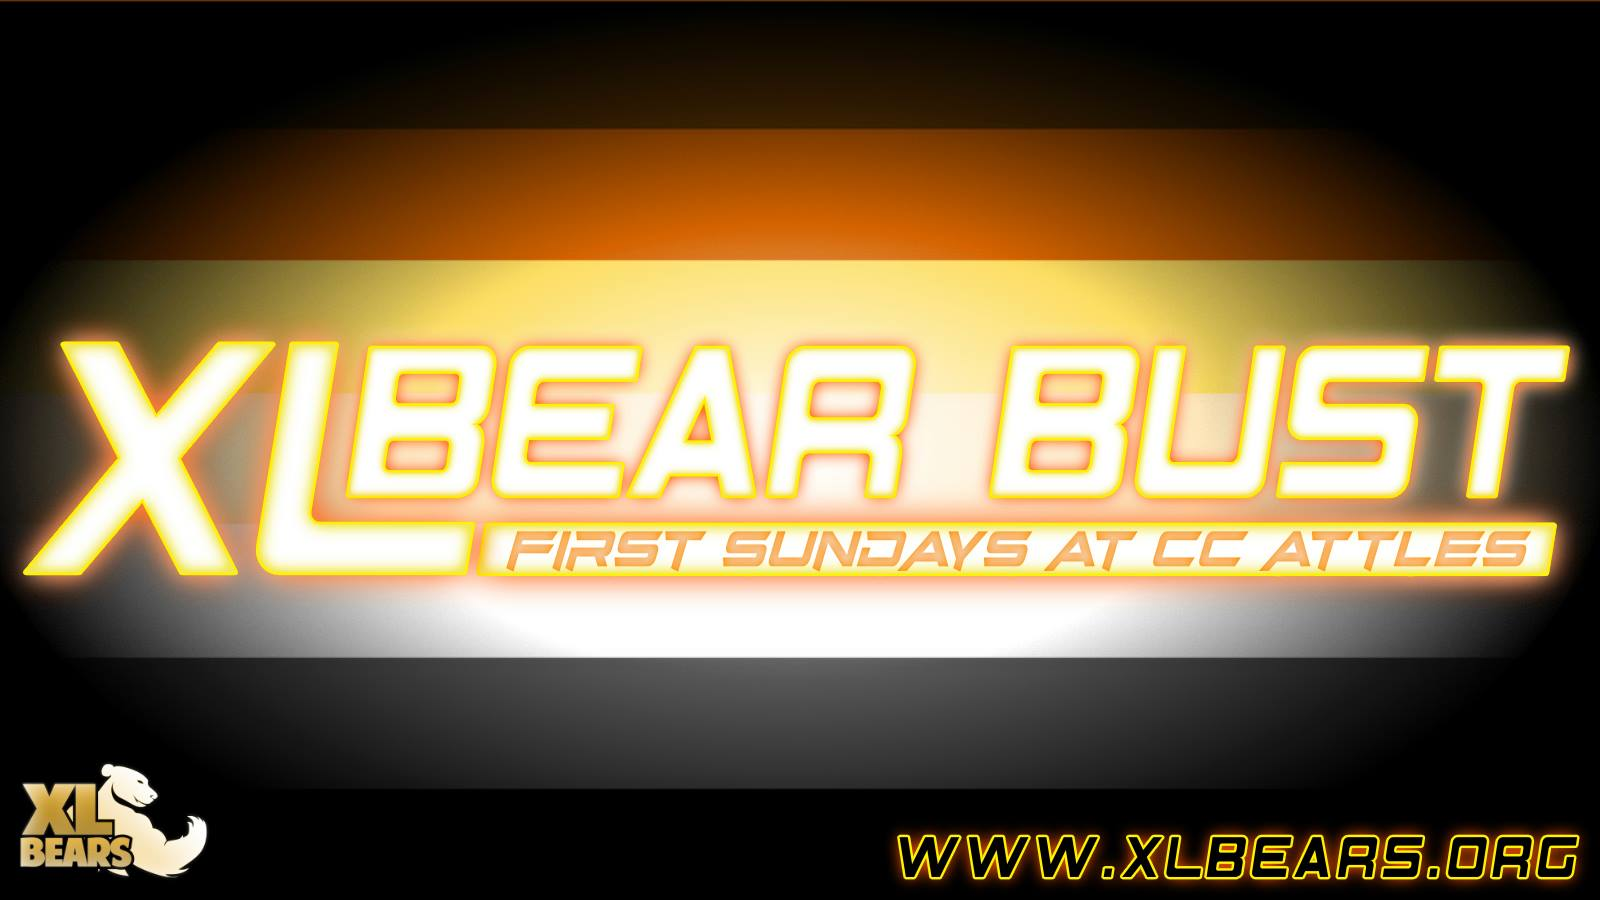 XL Bear Bust every first Sunday at 4pm at CC Attle's.